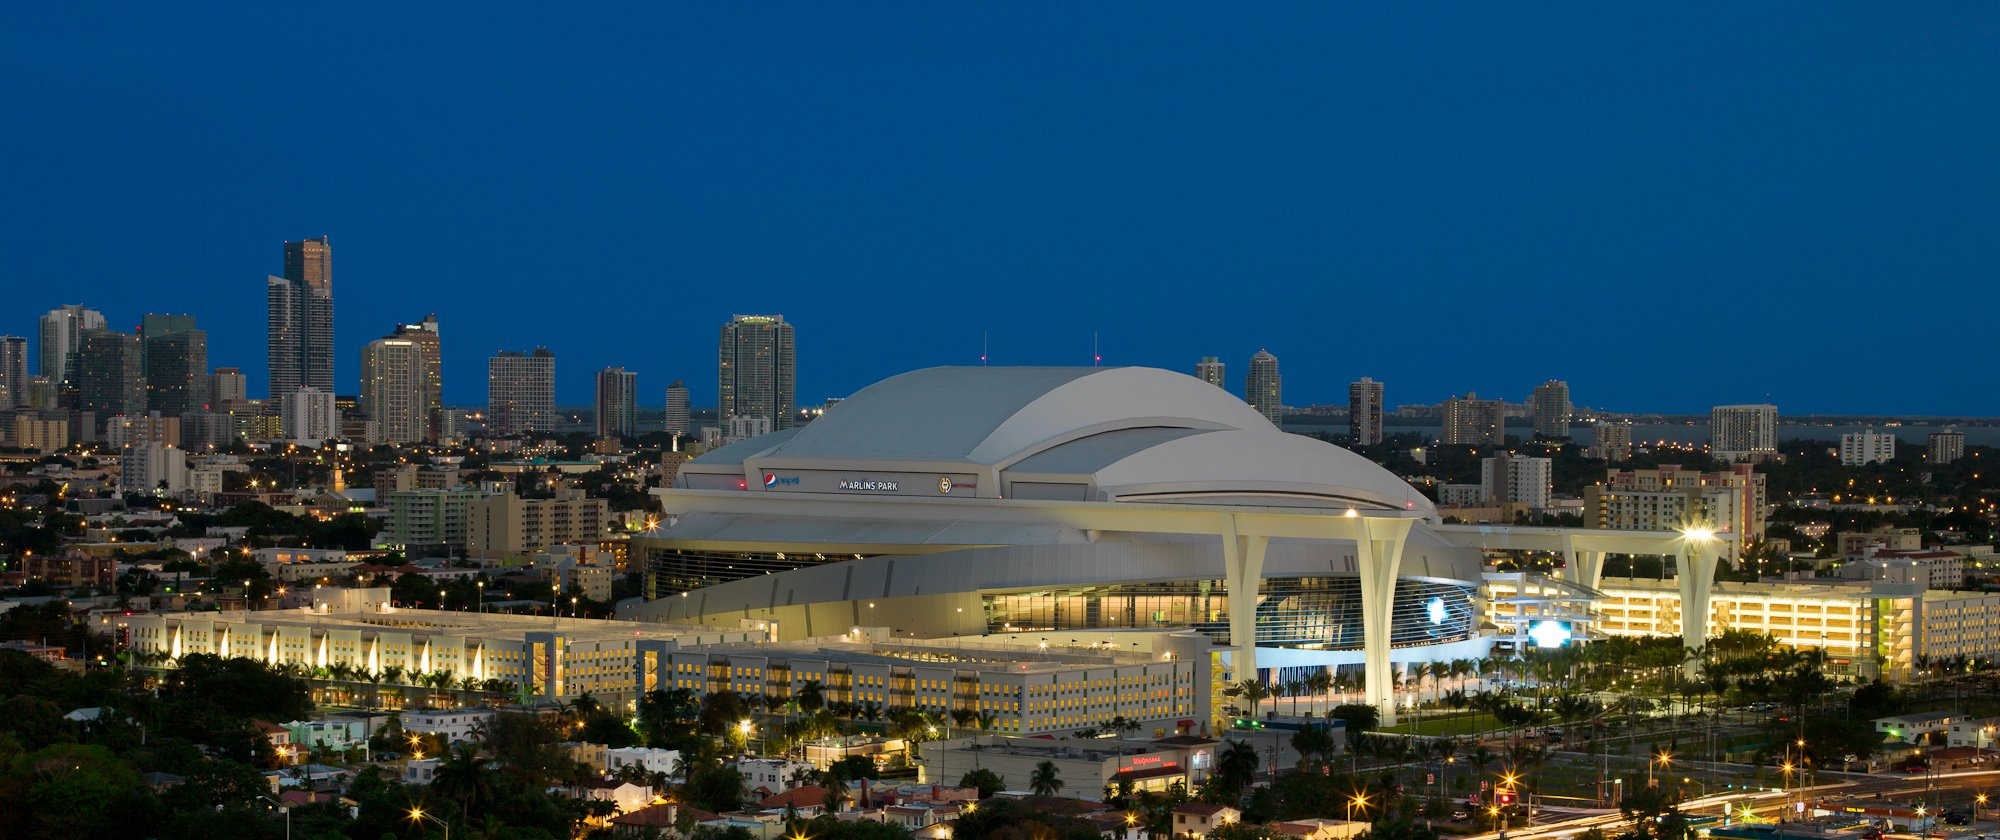 Image; Awesome Reviews of Marlins Park on Yelp